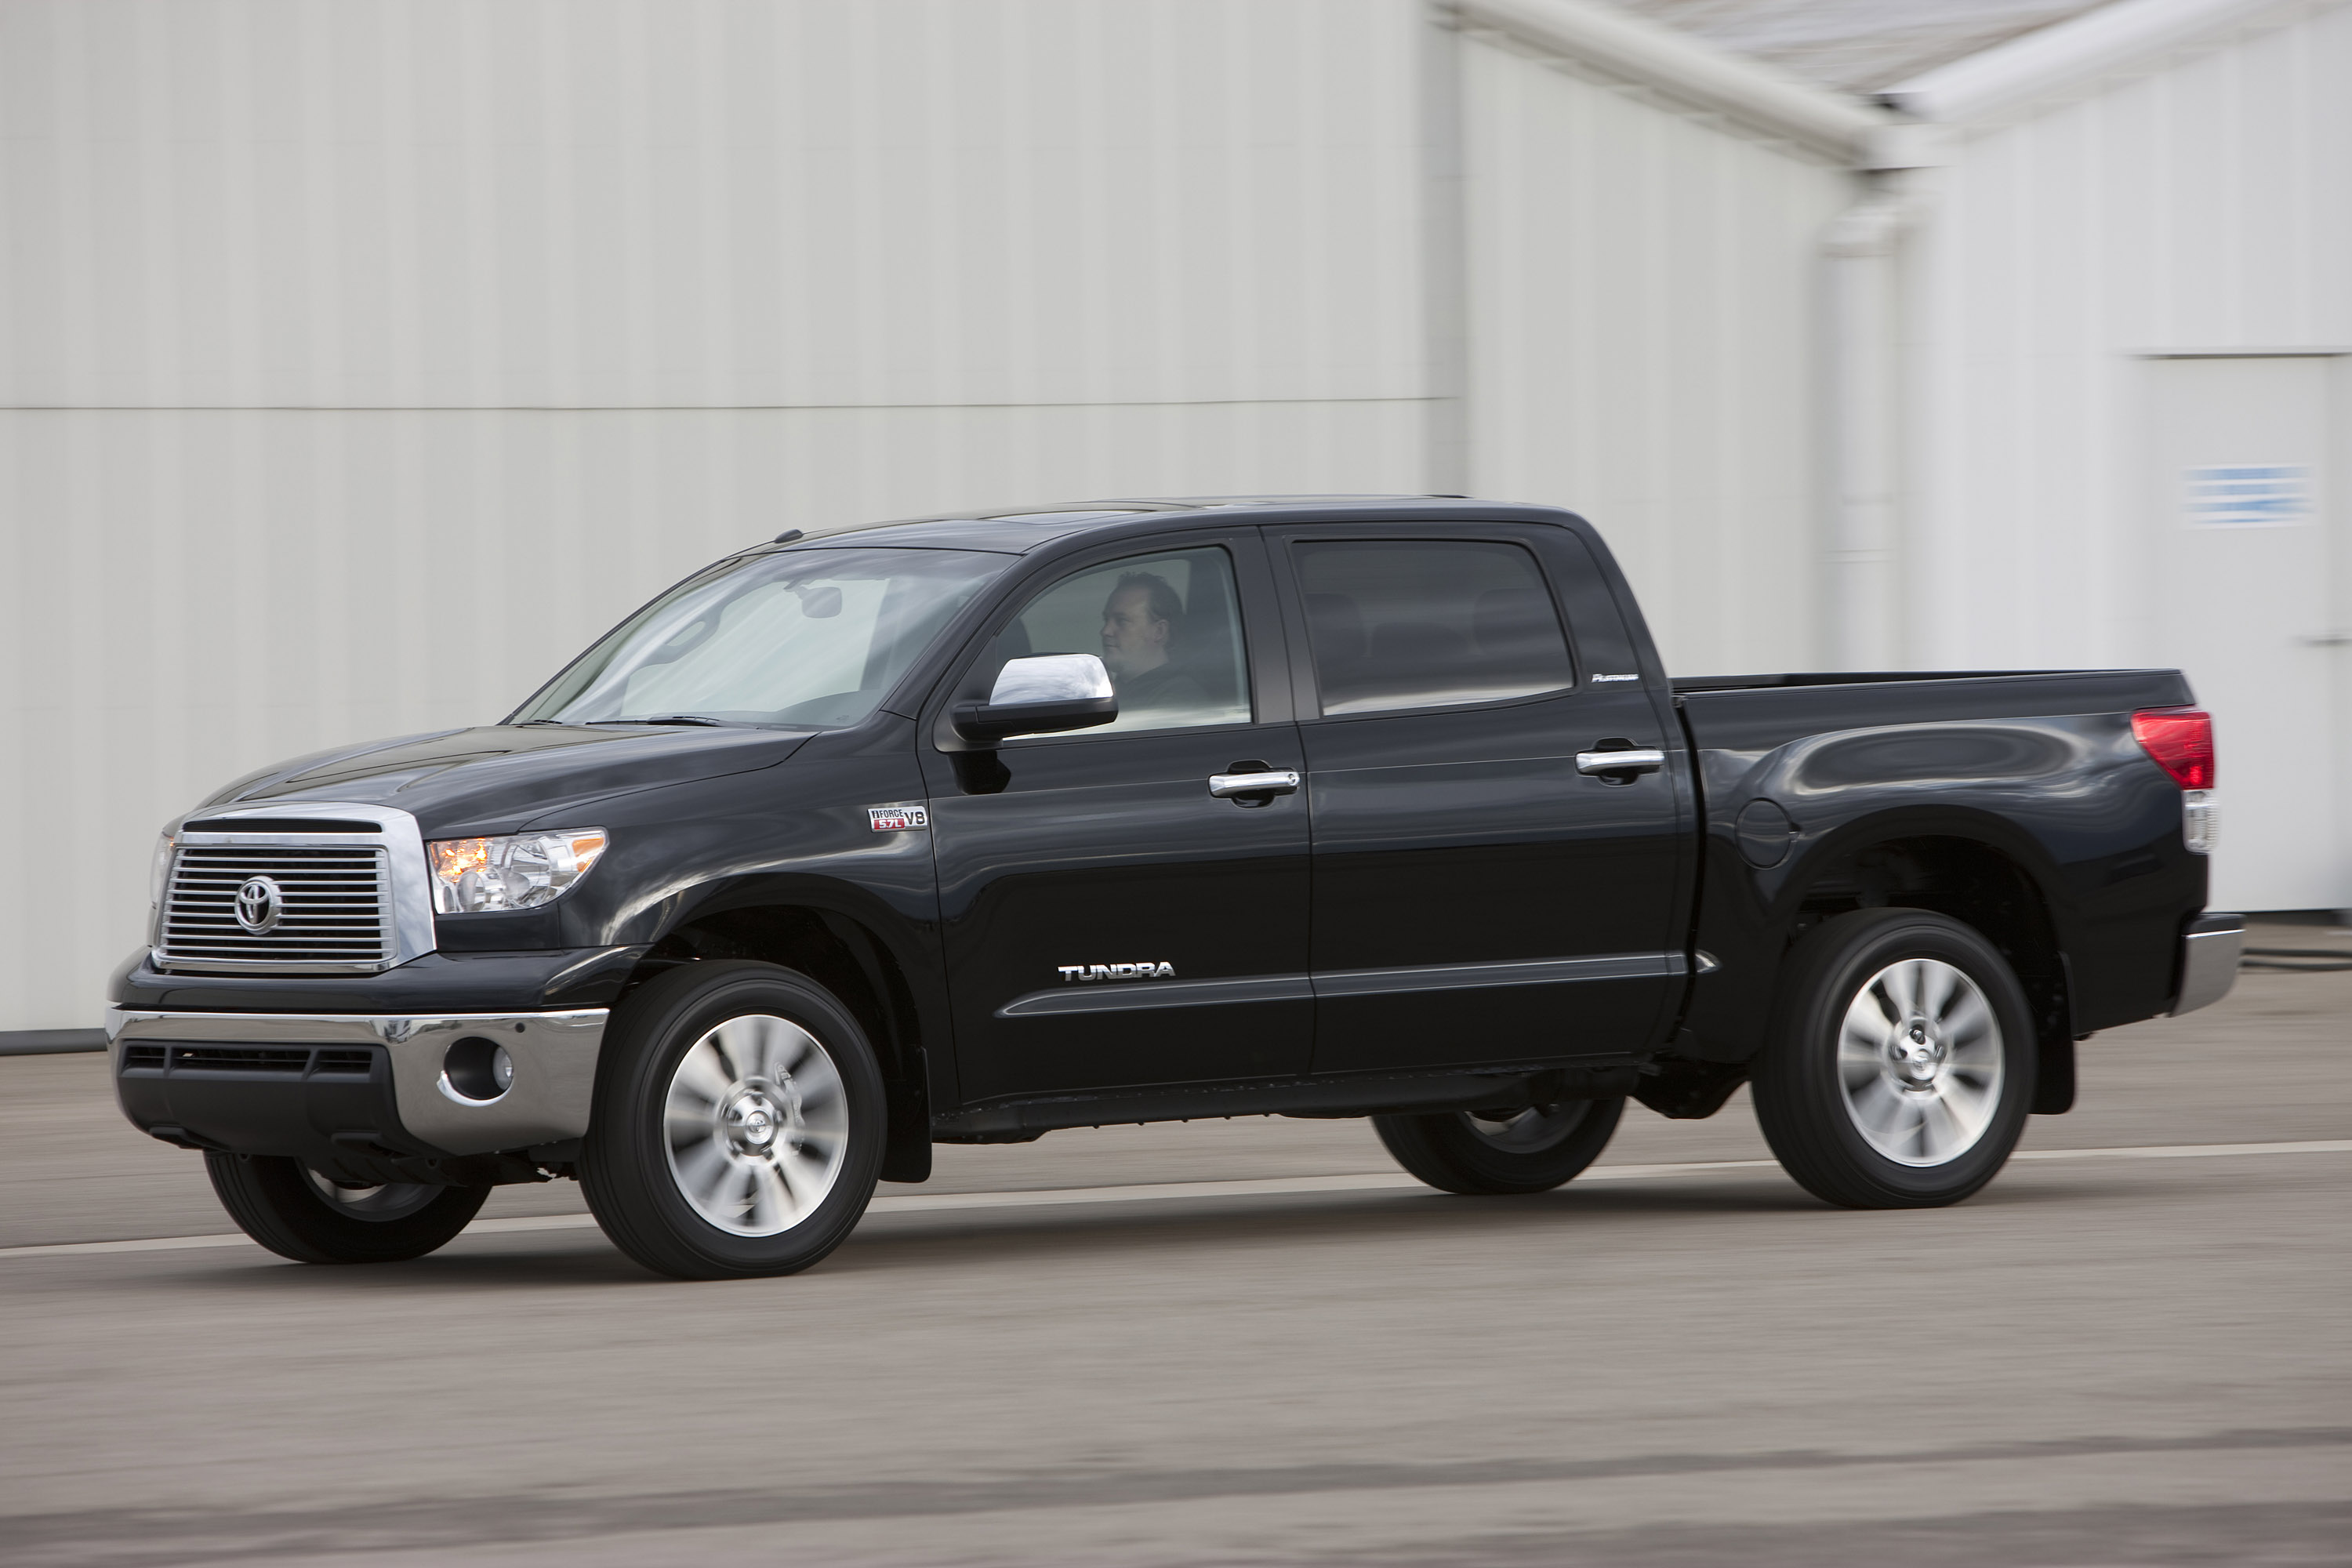 2012 Toyota Tundra Review, Ratings, Specs, Prices, and ...